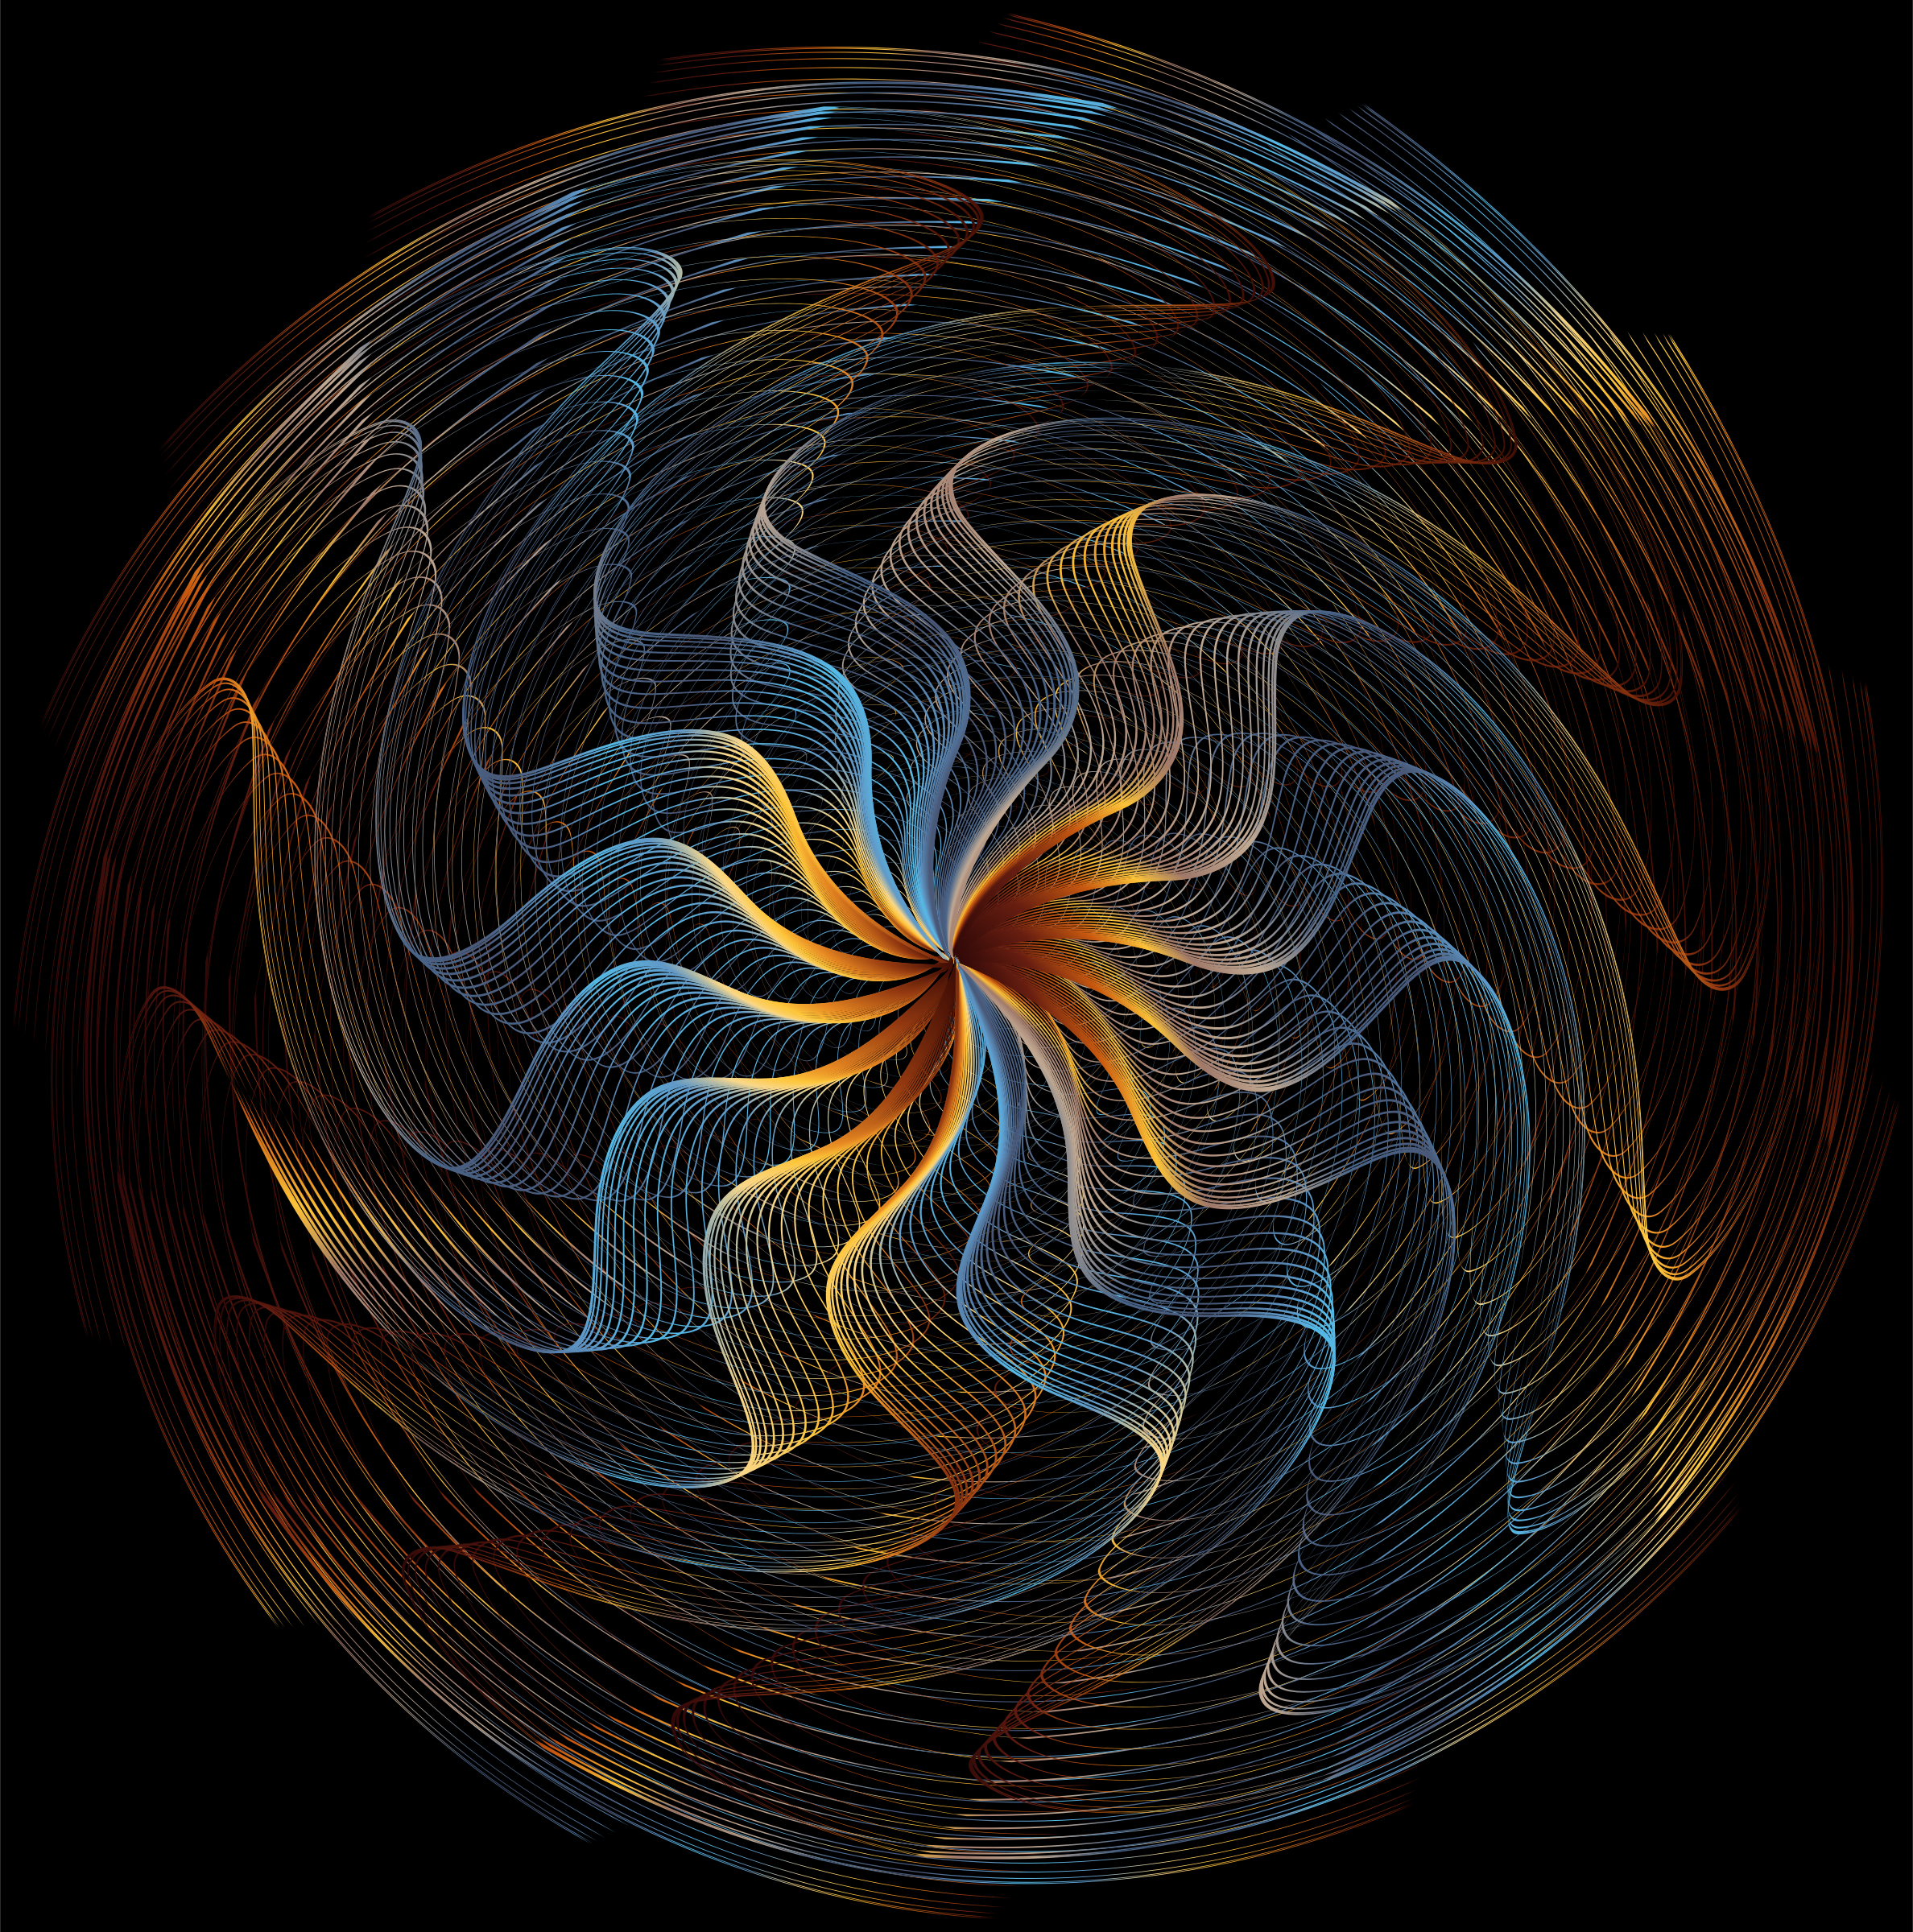 Colorful Wavy Vortex Line Art 6 by GDJ